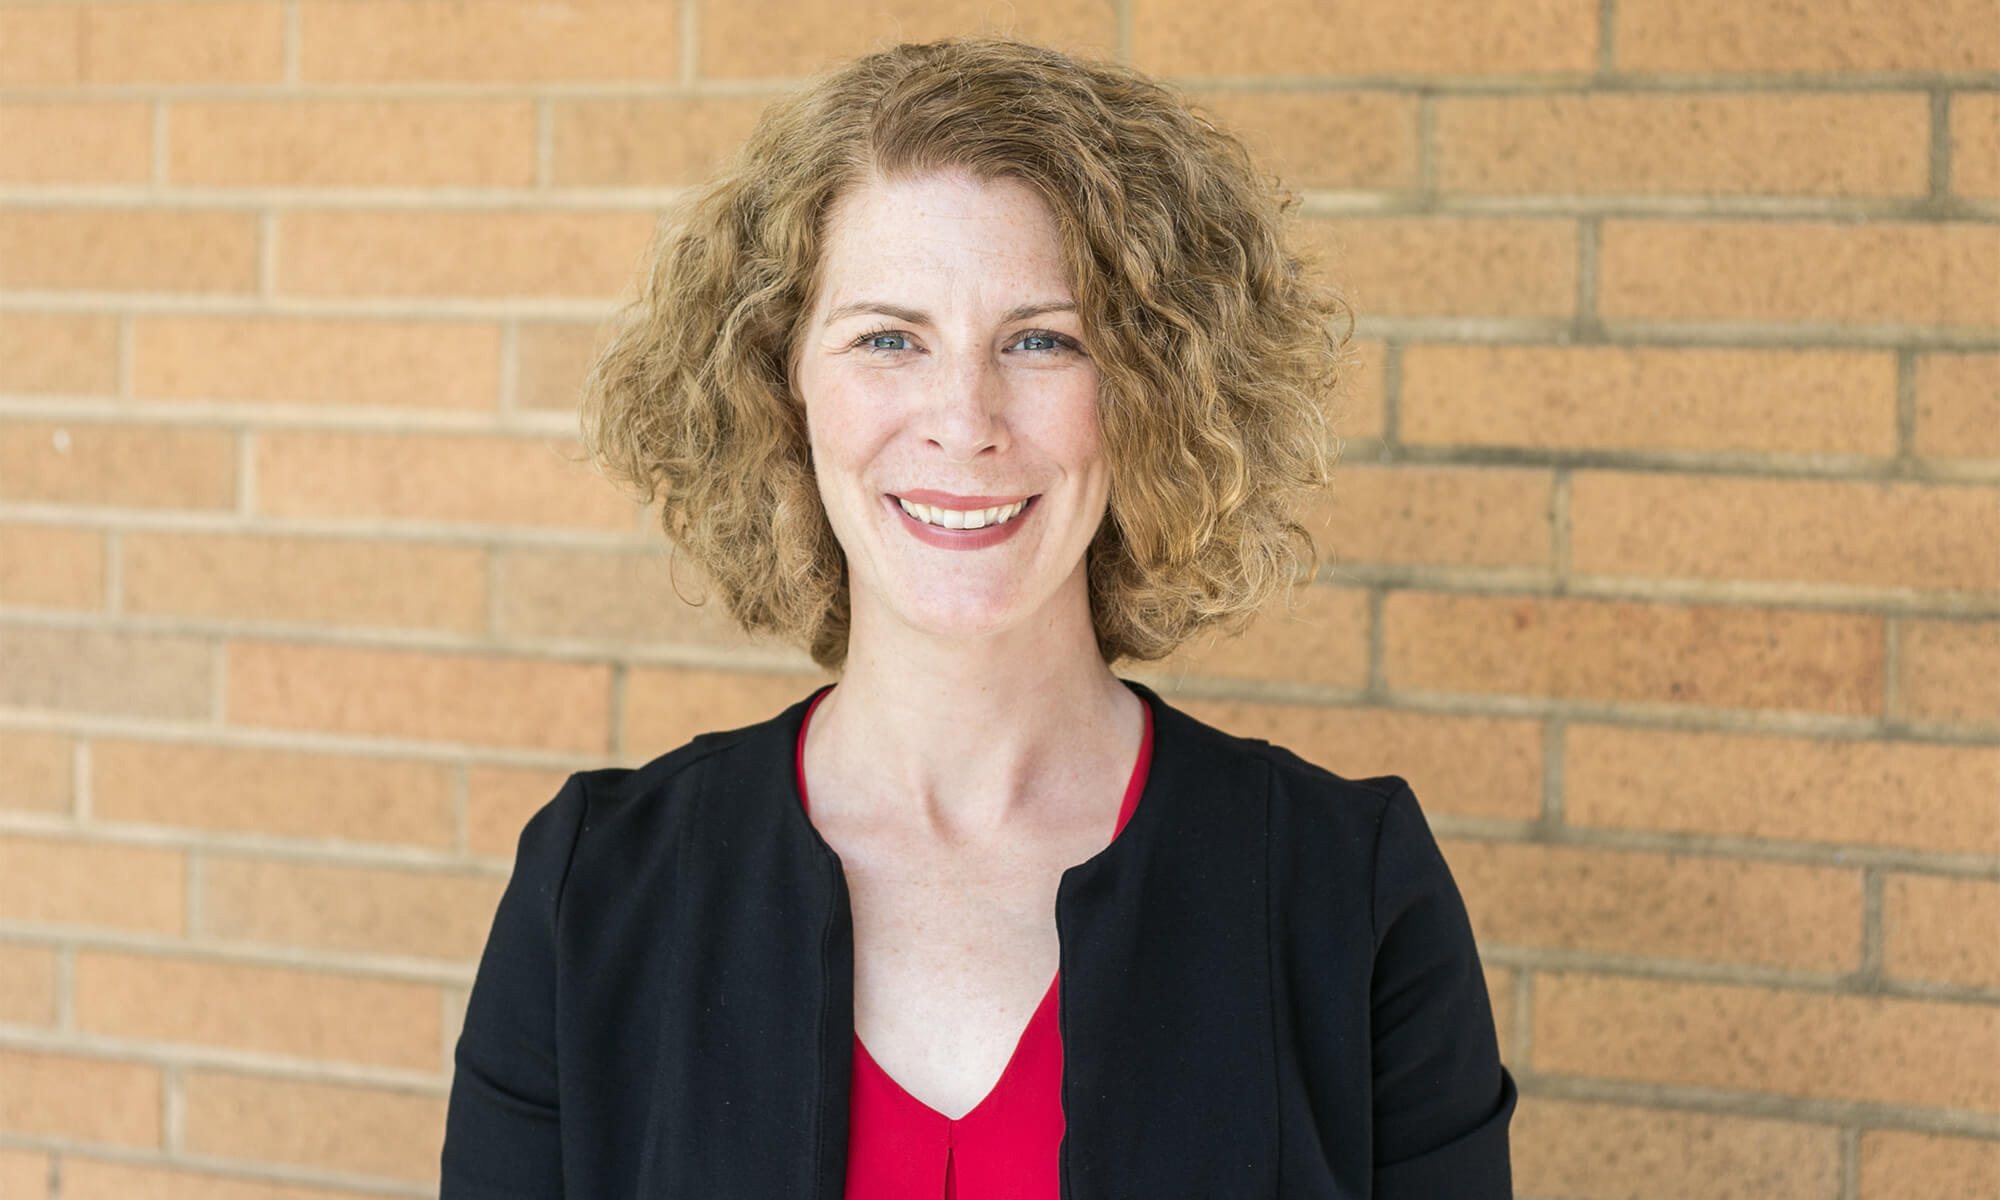 Concordia hires new School of Arts and Sciences dean, Erin Laverick